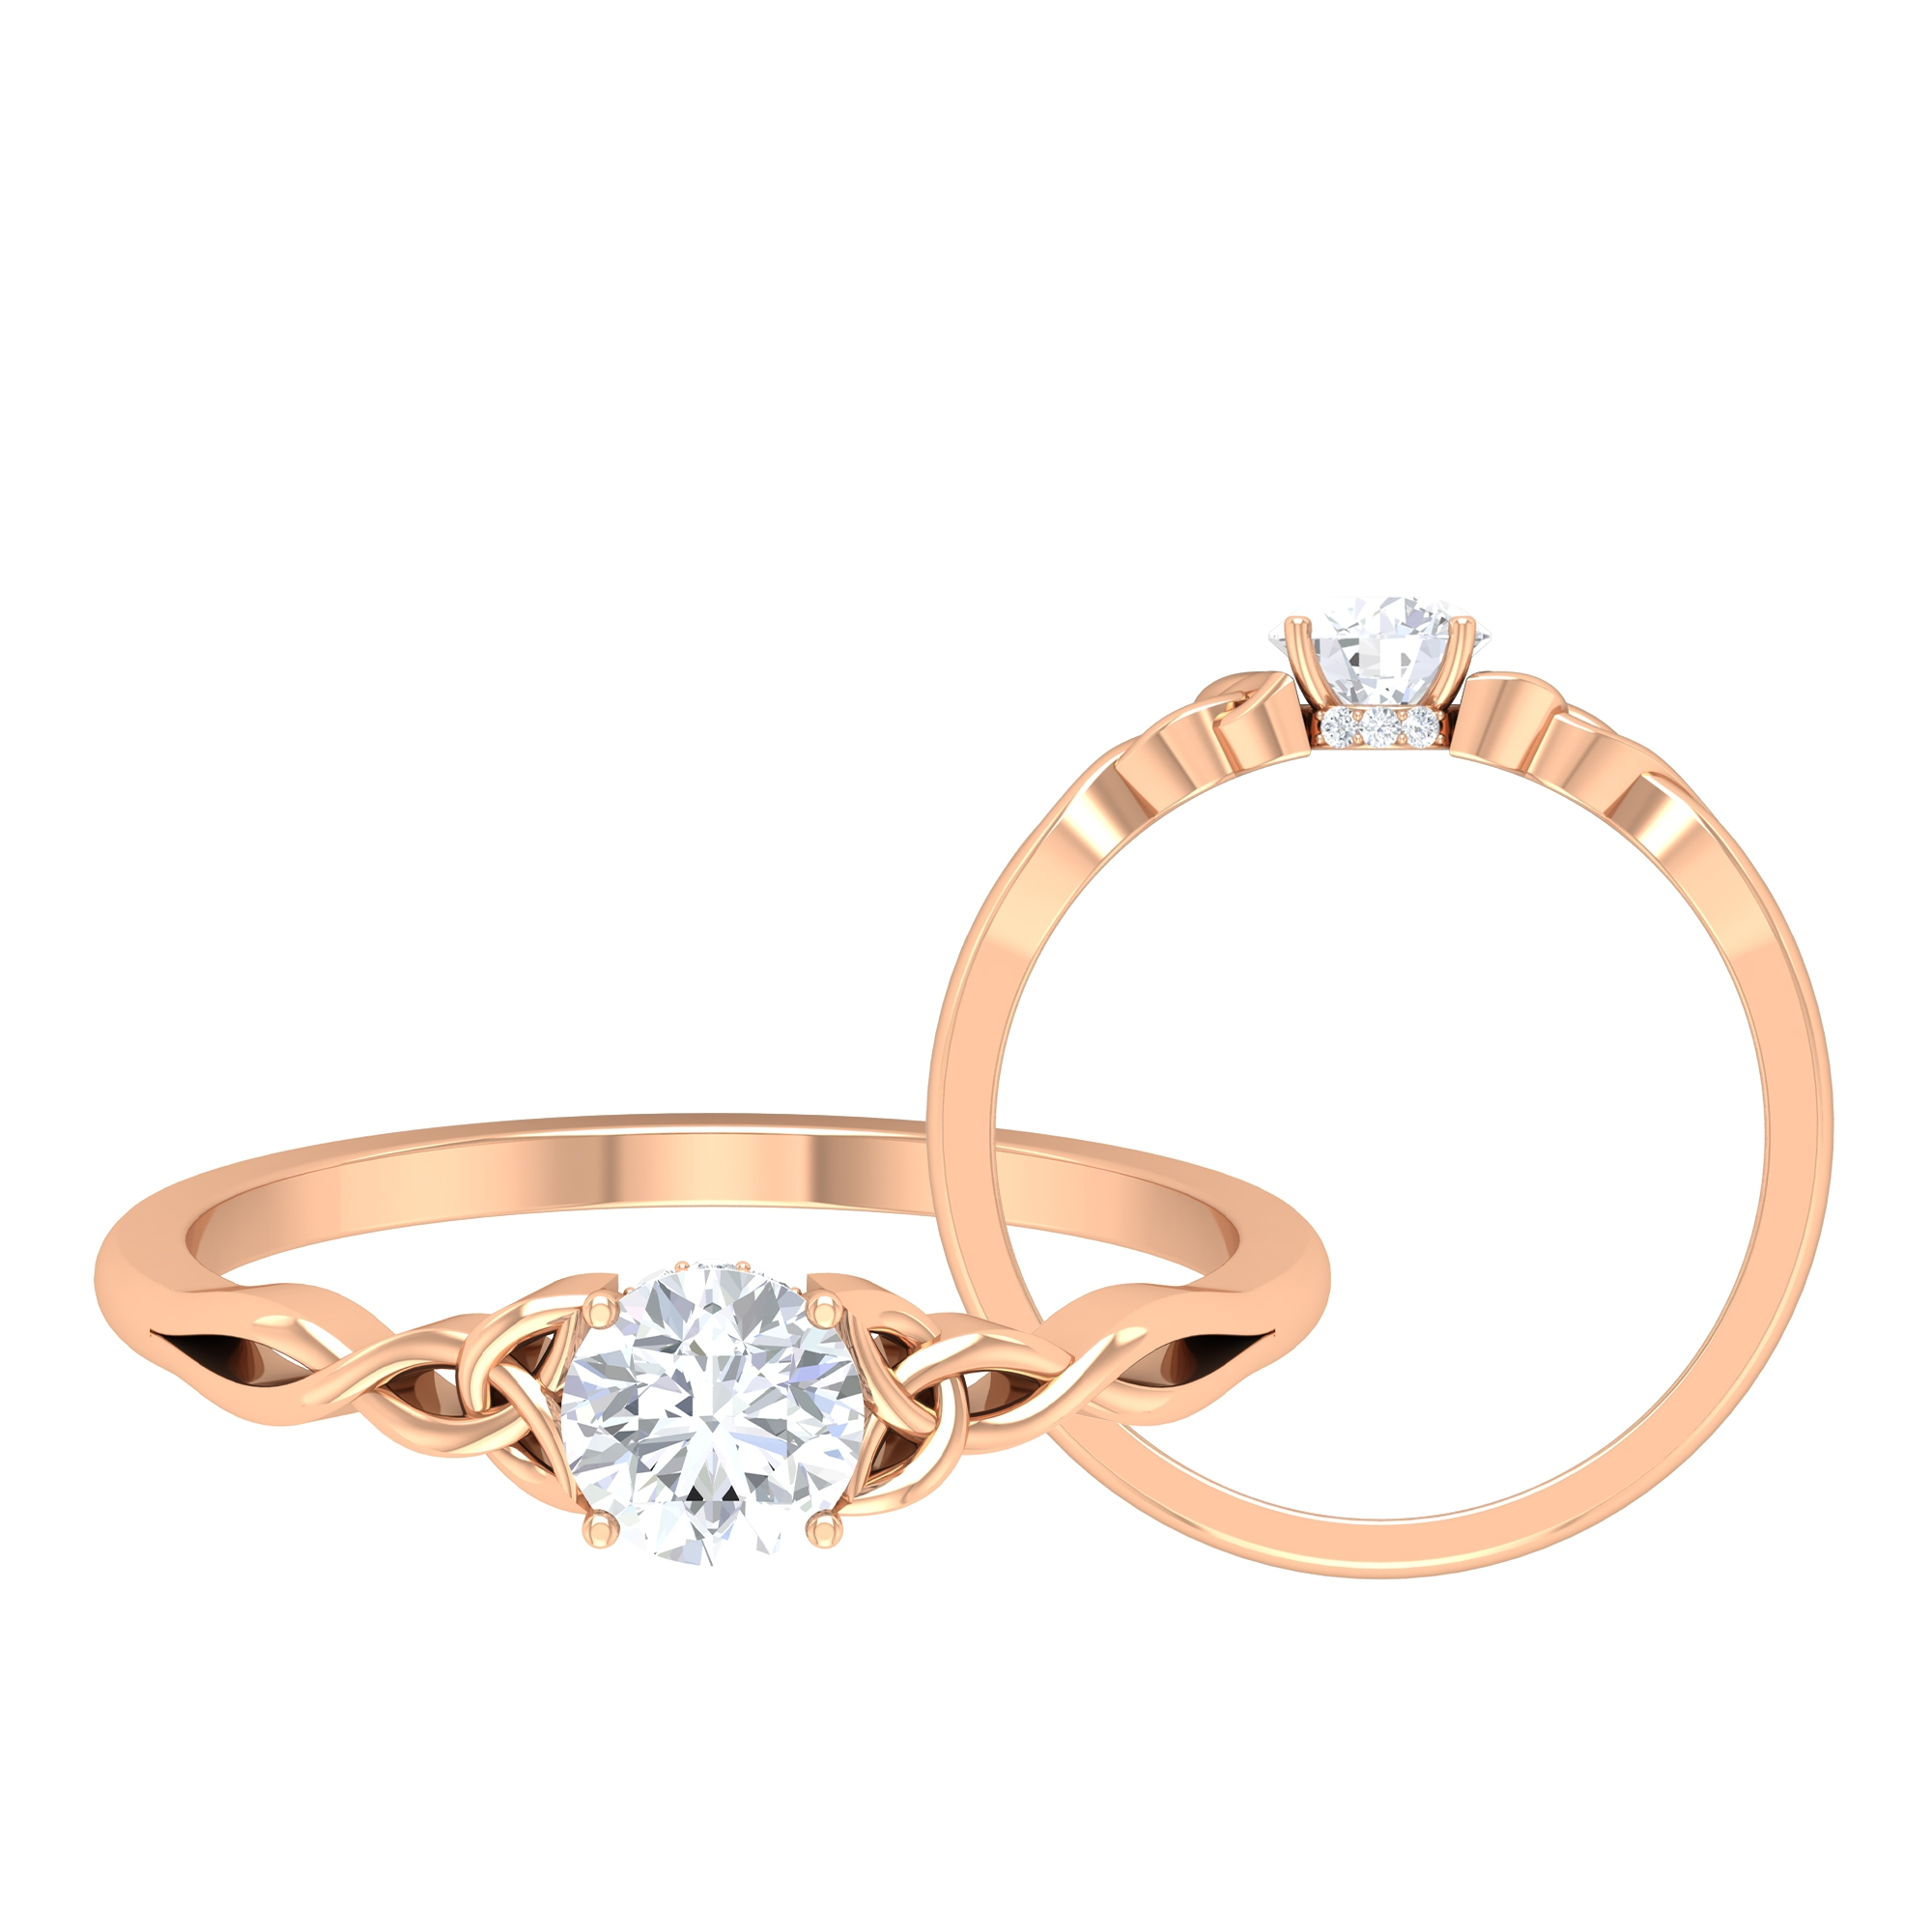 1/2 CT Round Cut Diamond Solitaire Ring in Prong Setting with  Hidden Halo and Celtic Details